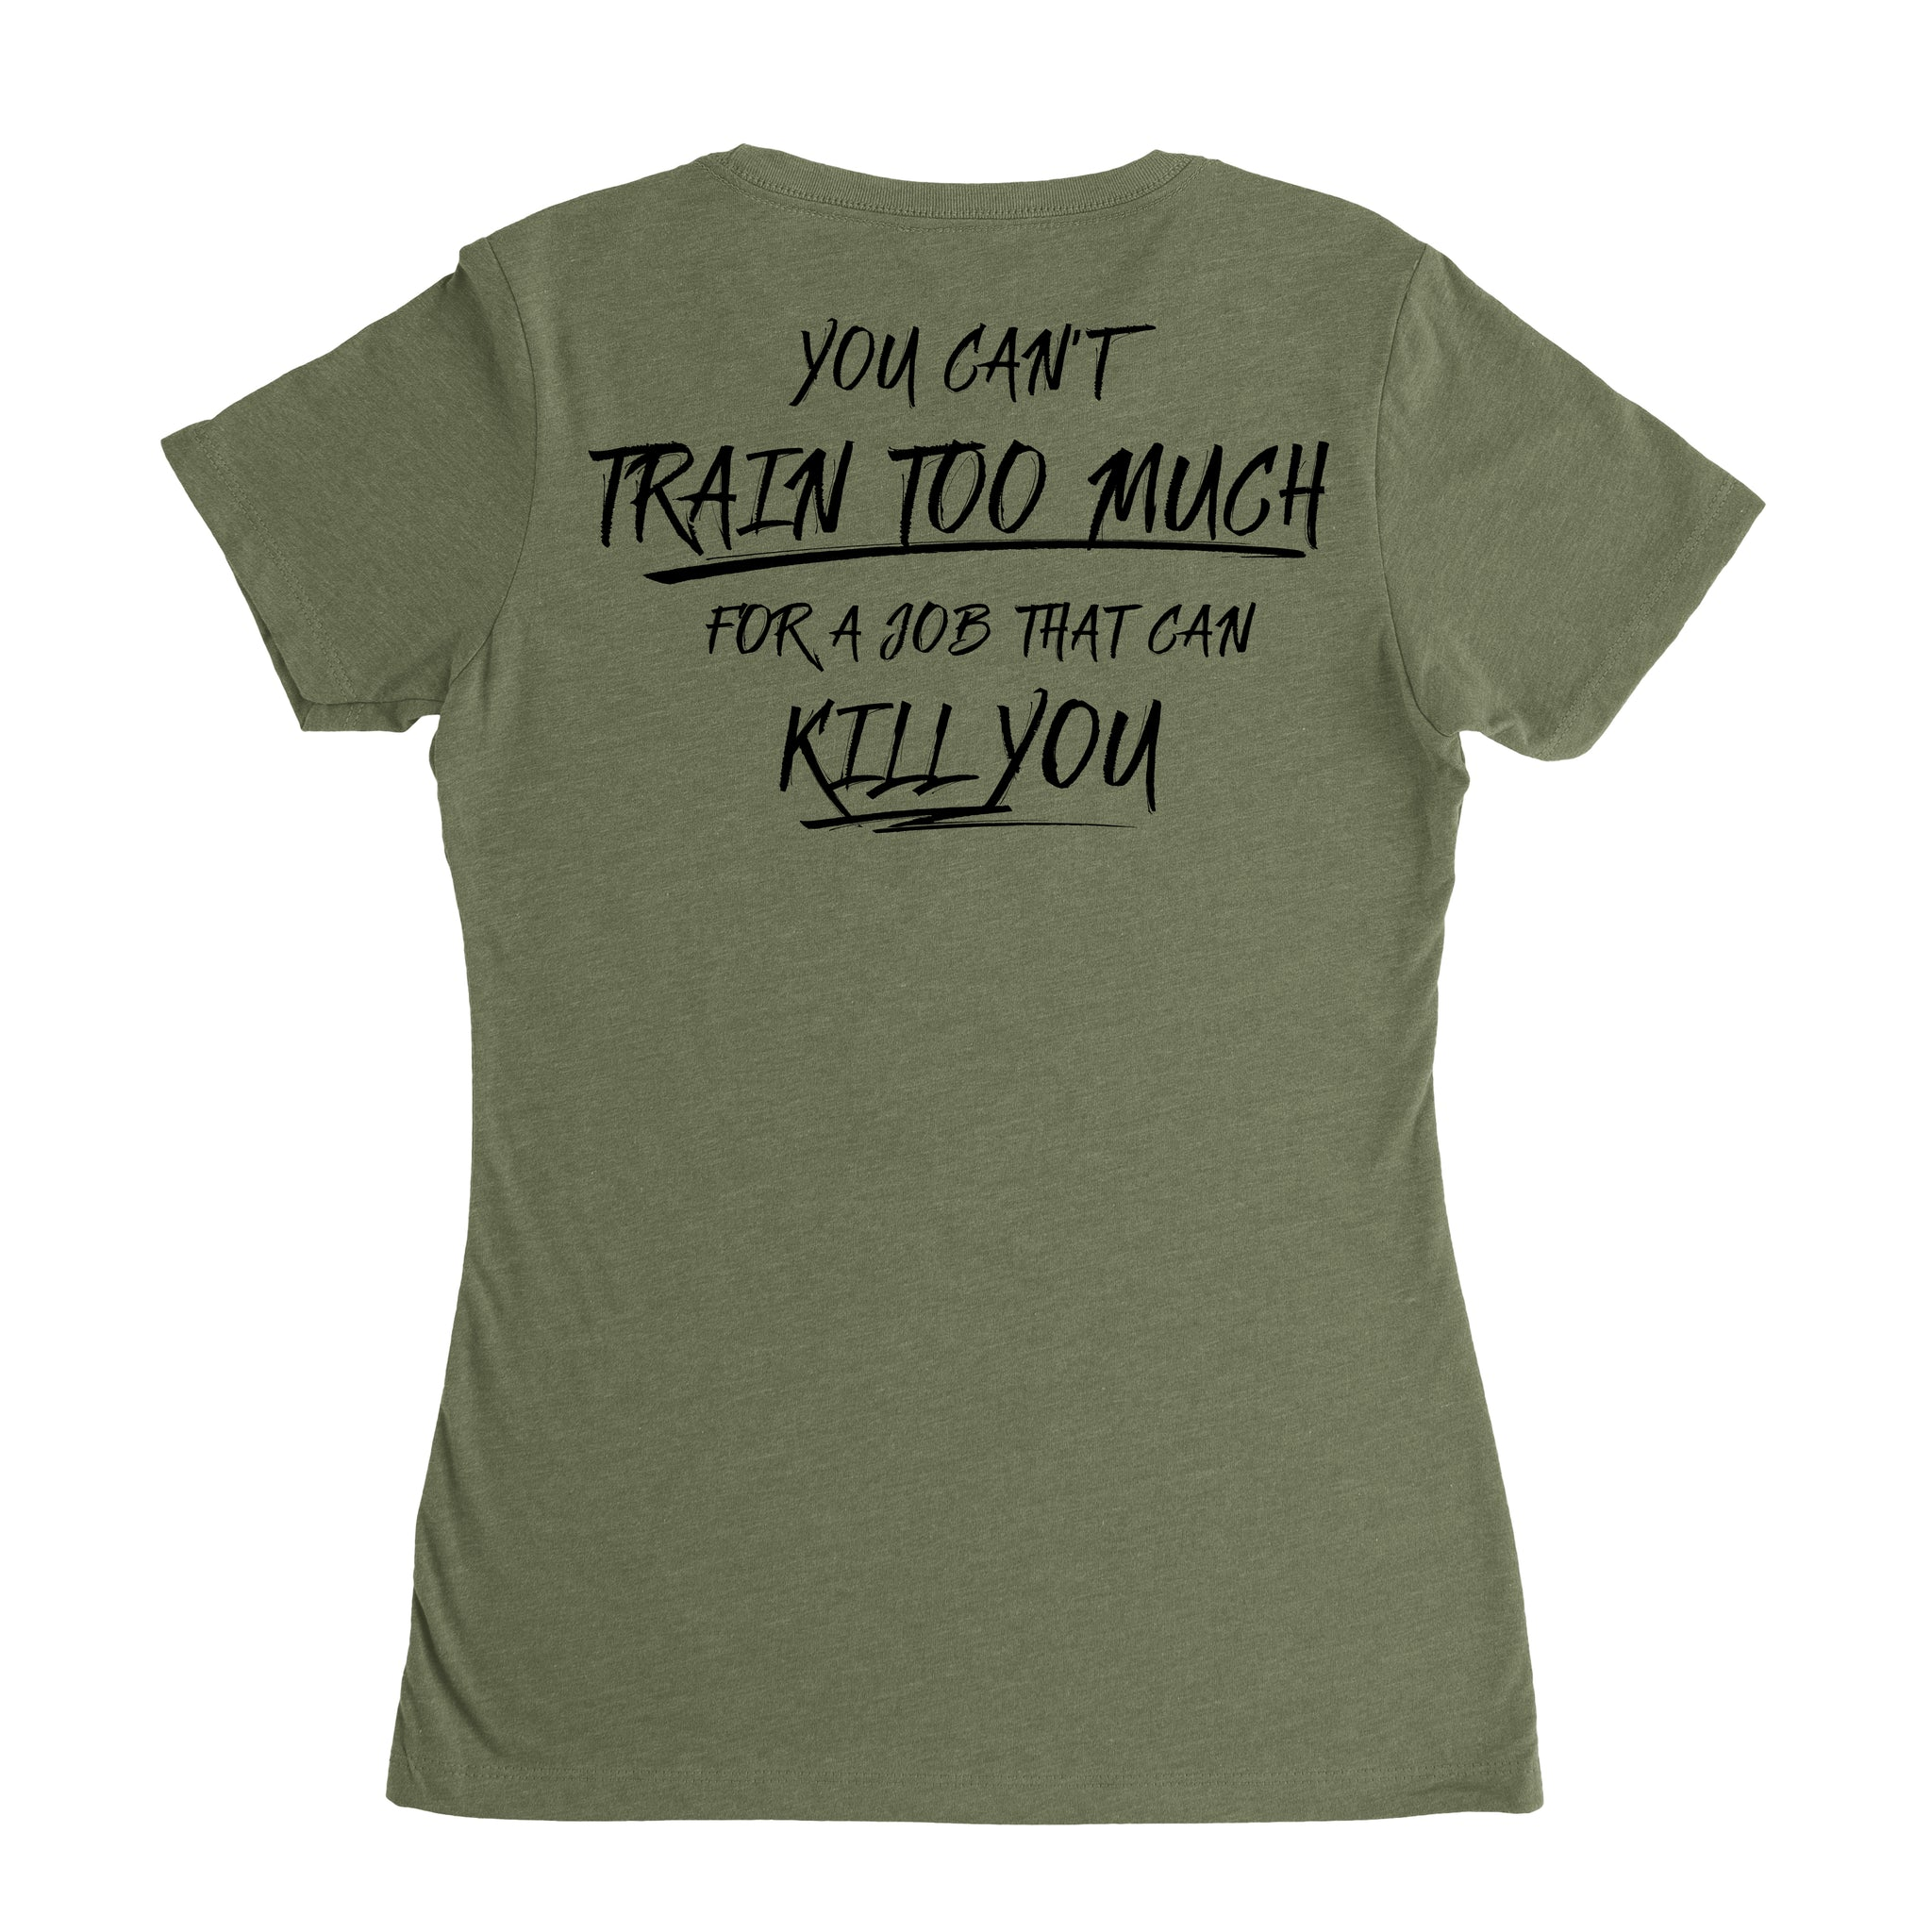 You Can't Train Too Much (V-Neck) - Military Green - T-Shirts - Pipe Hitters Union